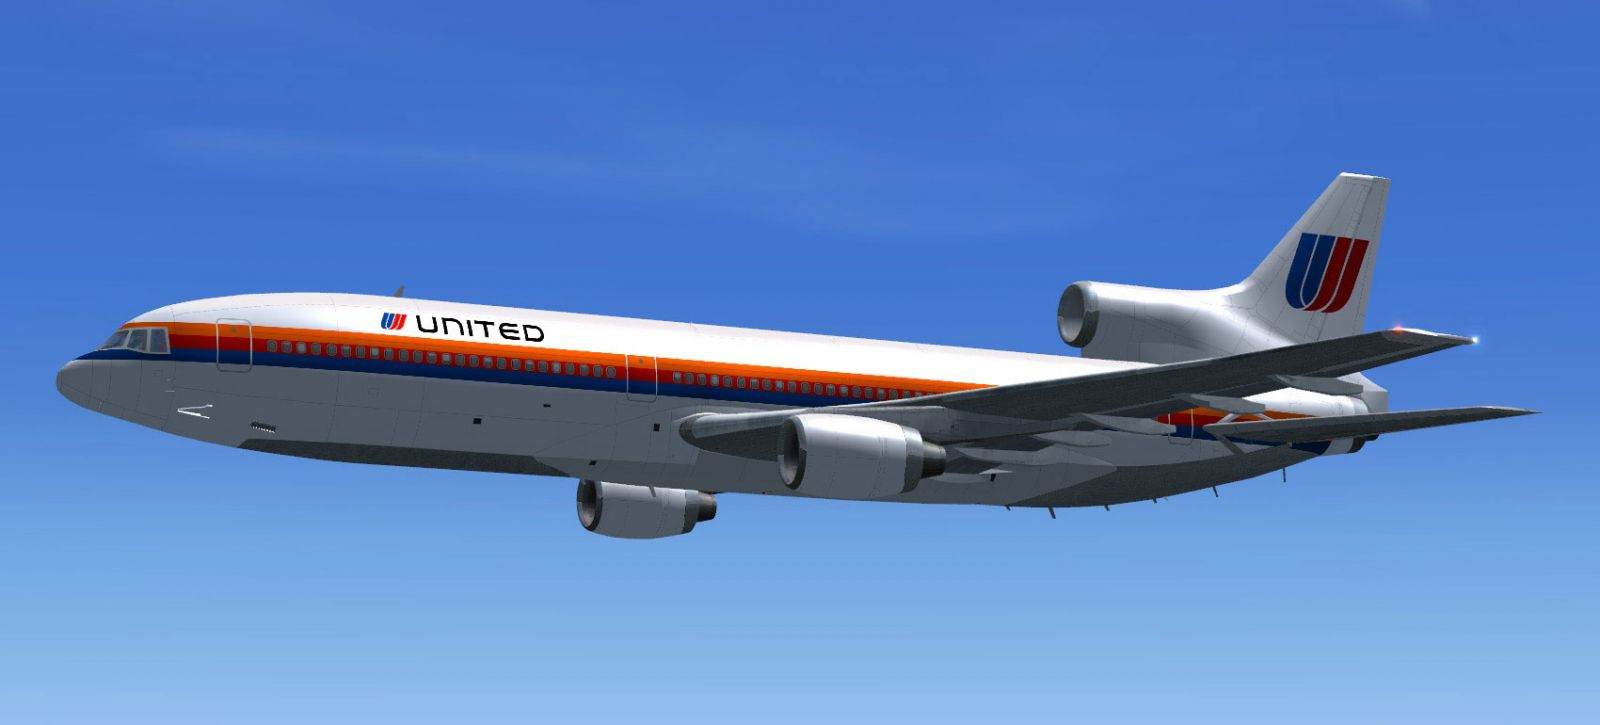 http://flyawaysimulation.com/media/images2/images/united-airlines-lockheed-L-1011-fsx1.jpg